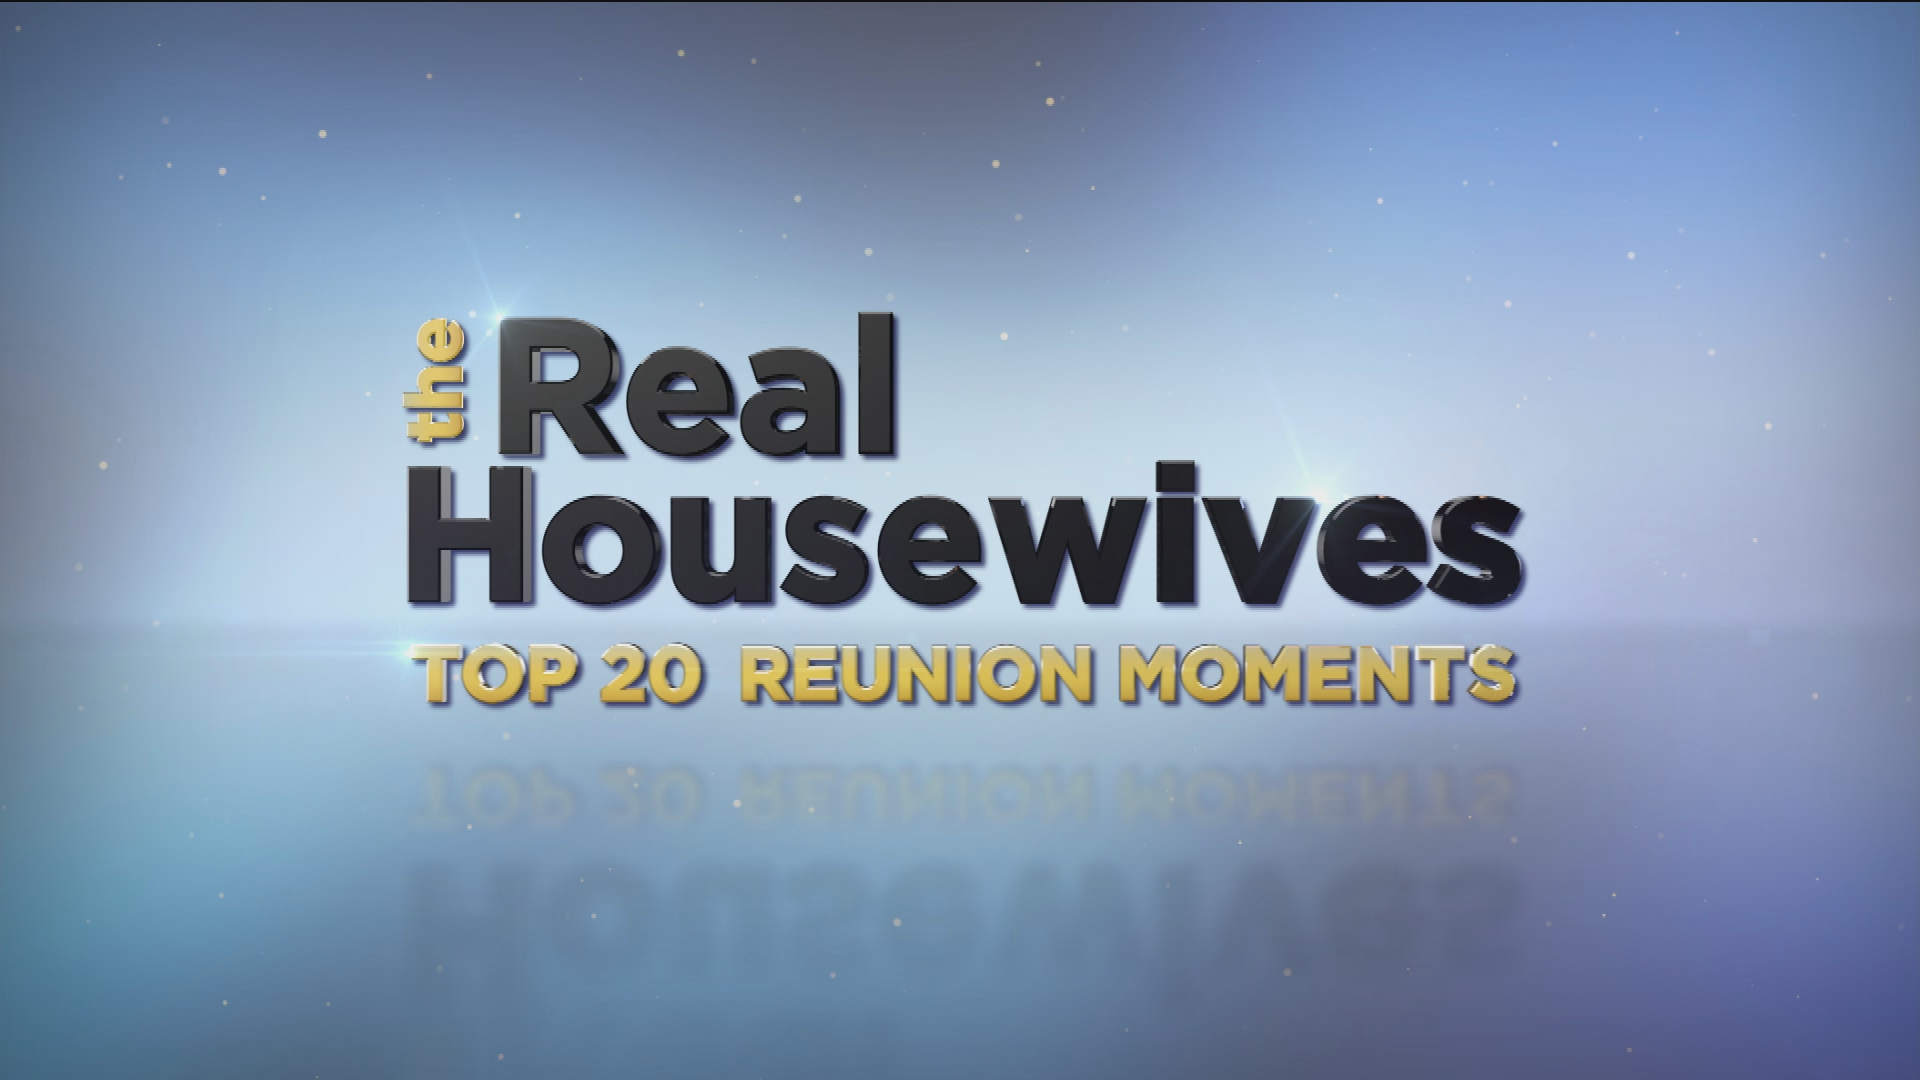 The Top 20 Reunion Moments